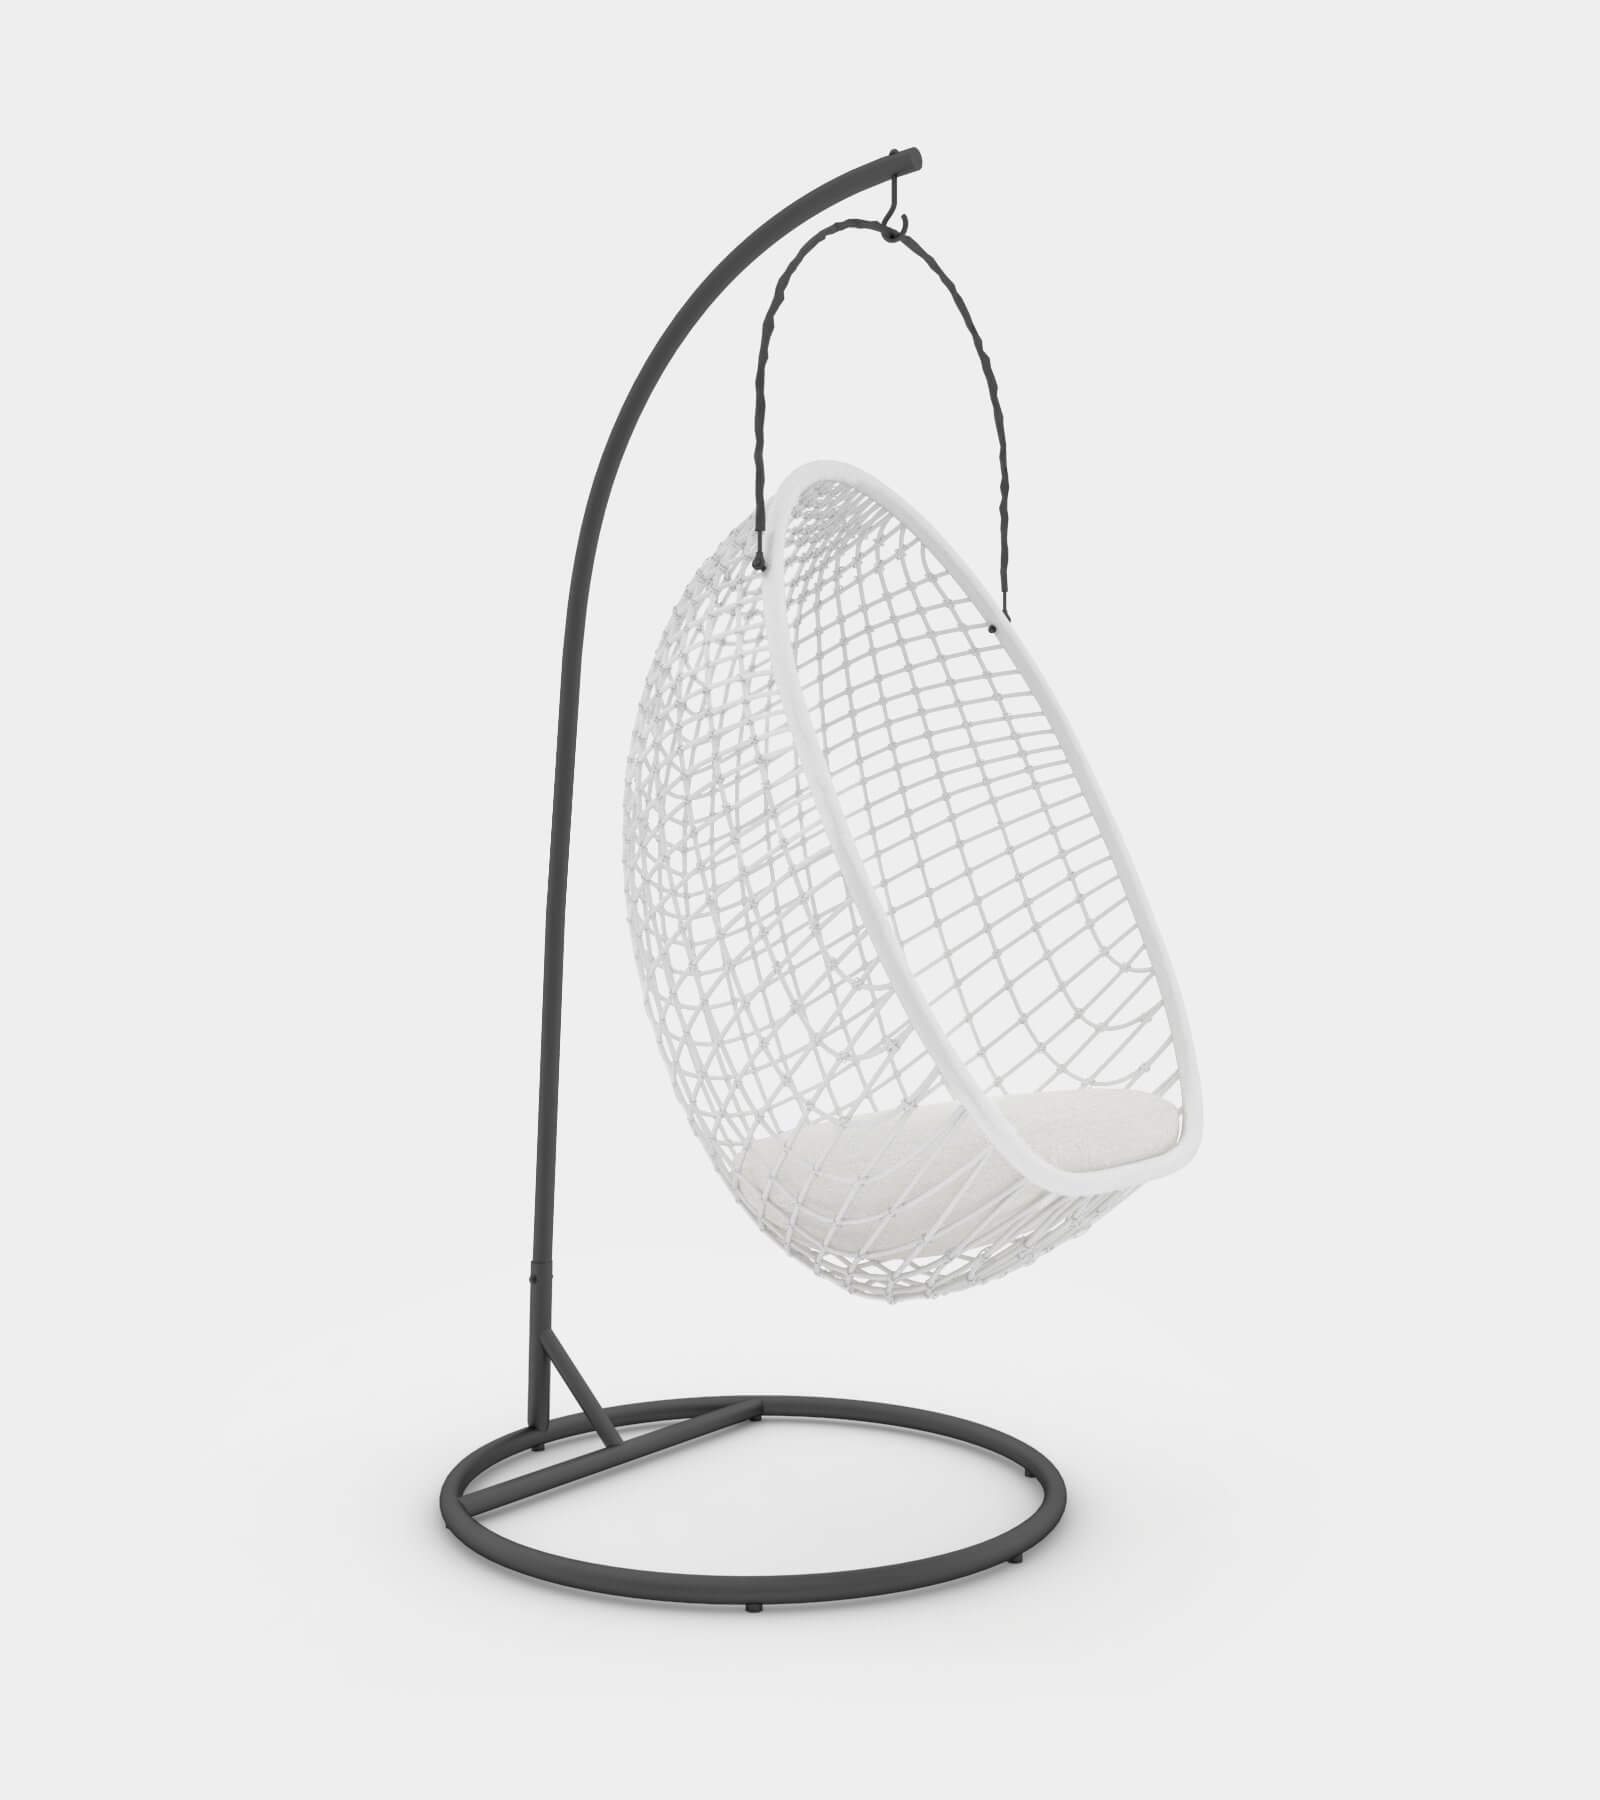 Chillout rattan hanging chair - 3D Model